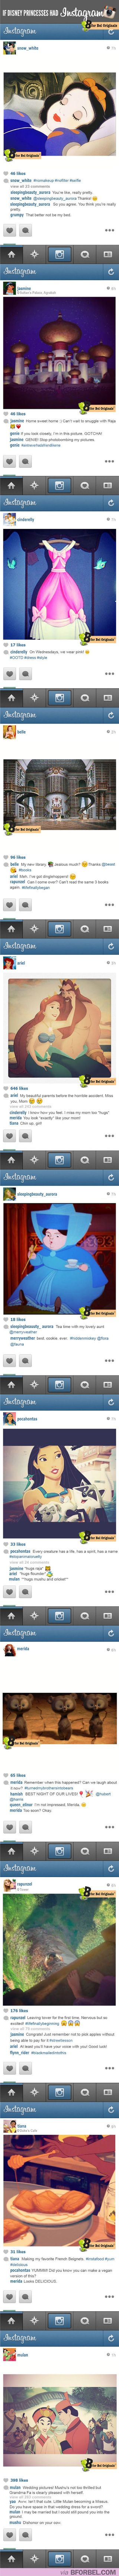 What if Disney Princesses had Instagram? Lol